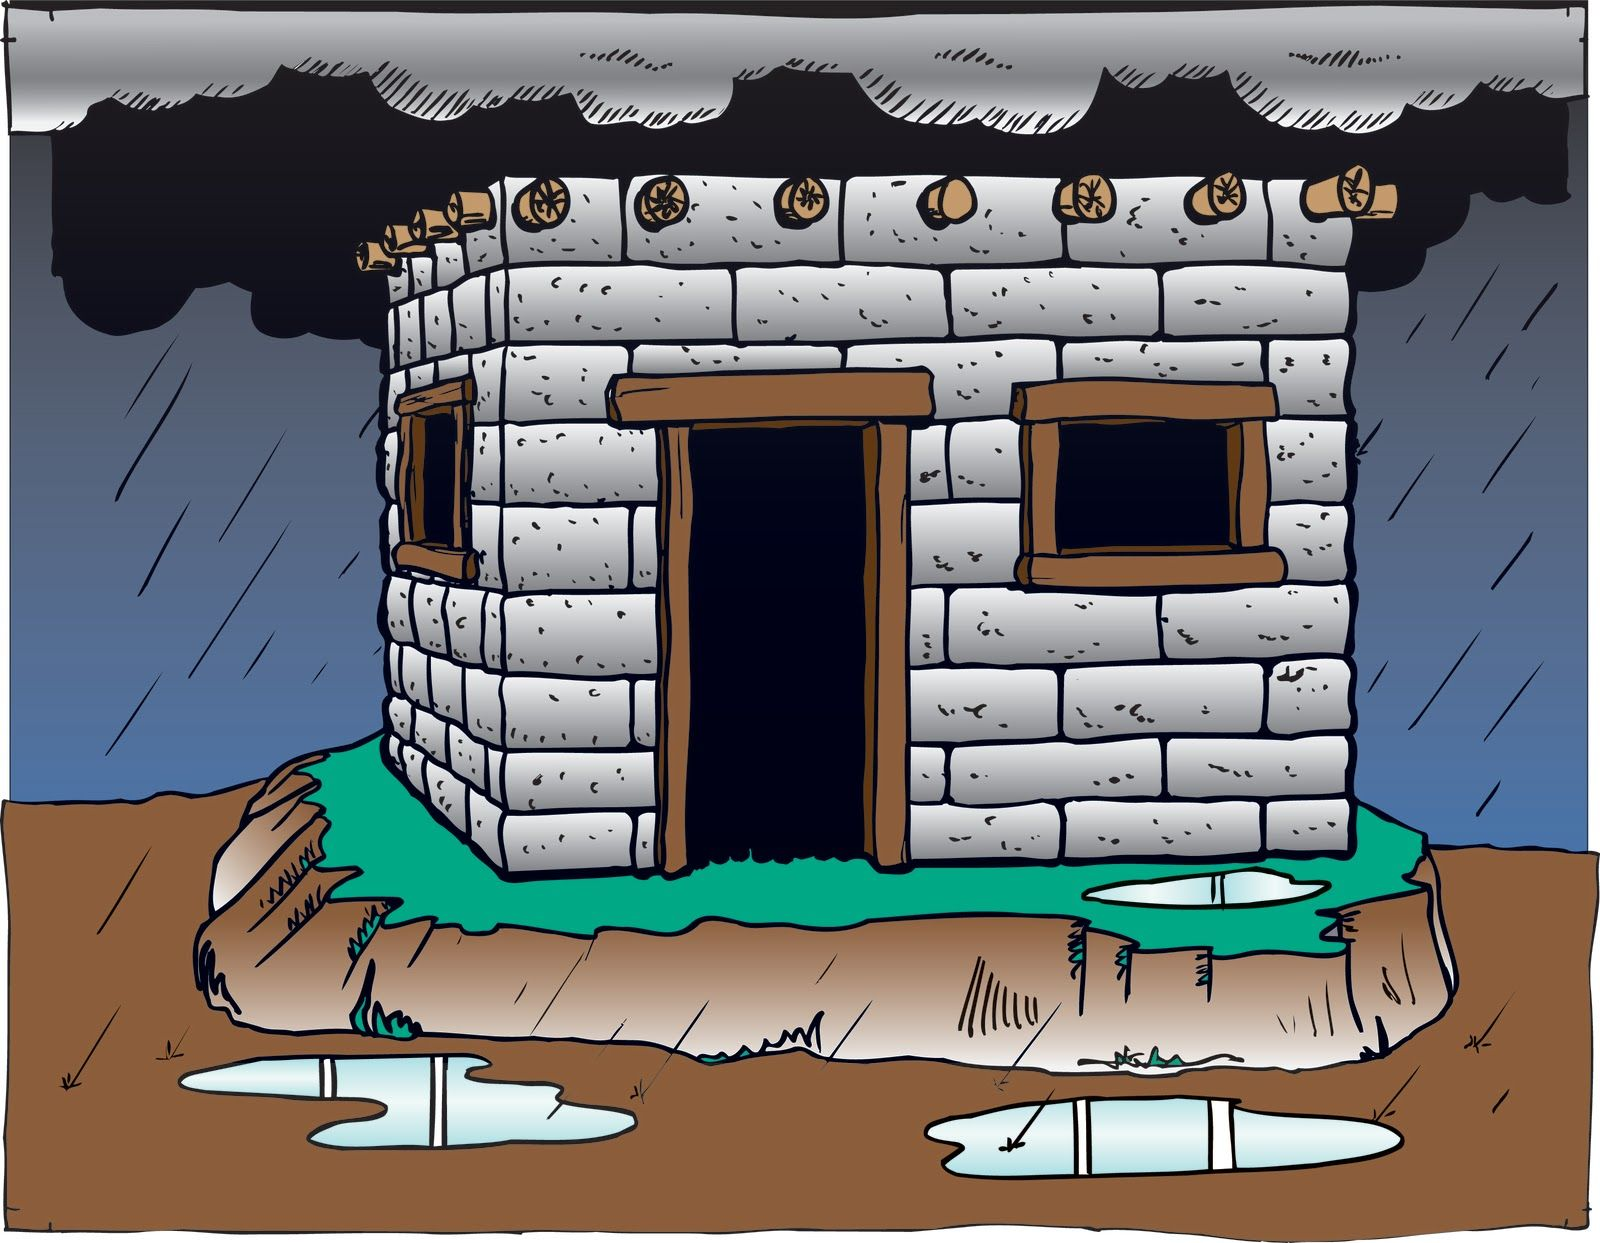 Wise man built his house upon the rock sermon - Wise Man Built His House Upon The Rock Craft Children S Ministry Blog The Wise